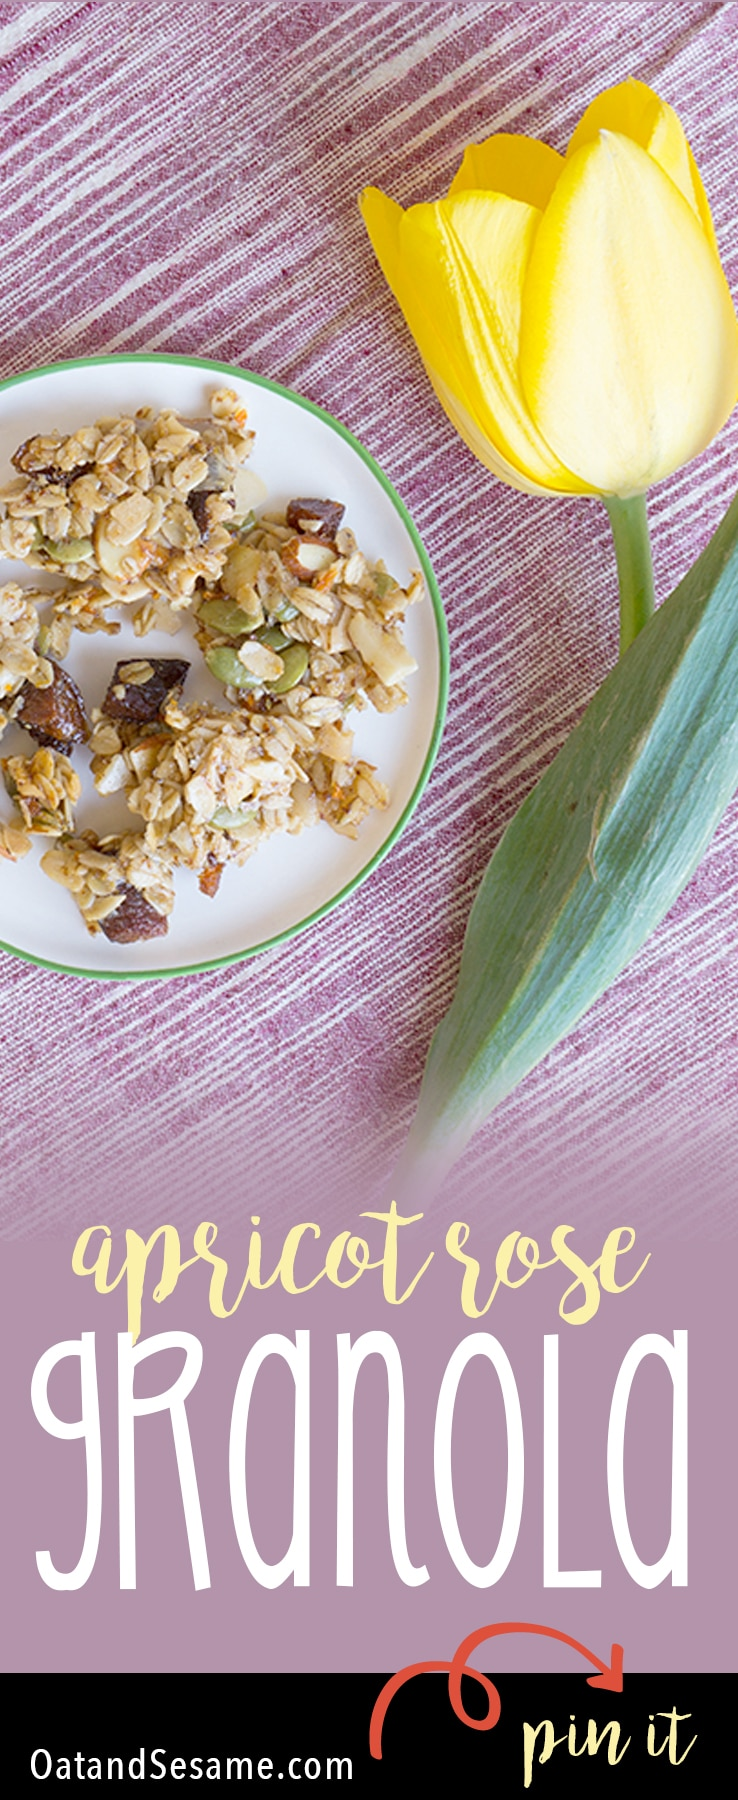 This granola is delicate and sweet with touches of rosewater, apricots and pumpkin seeds - Apricot Rose #Granola   #Recipes at OatandSesame.com